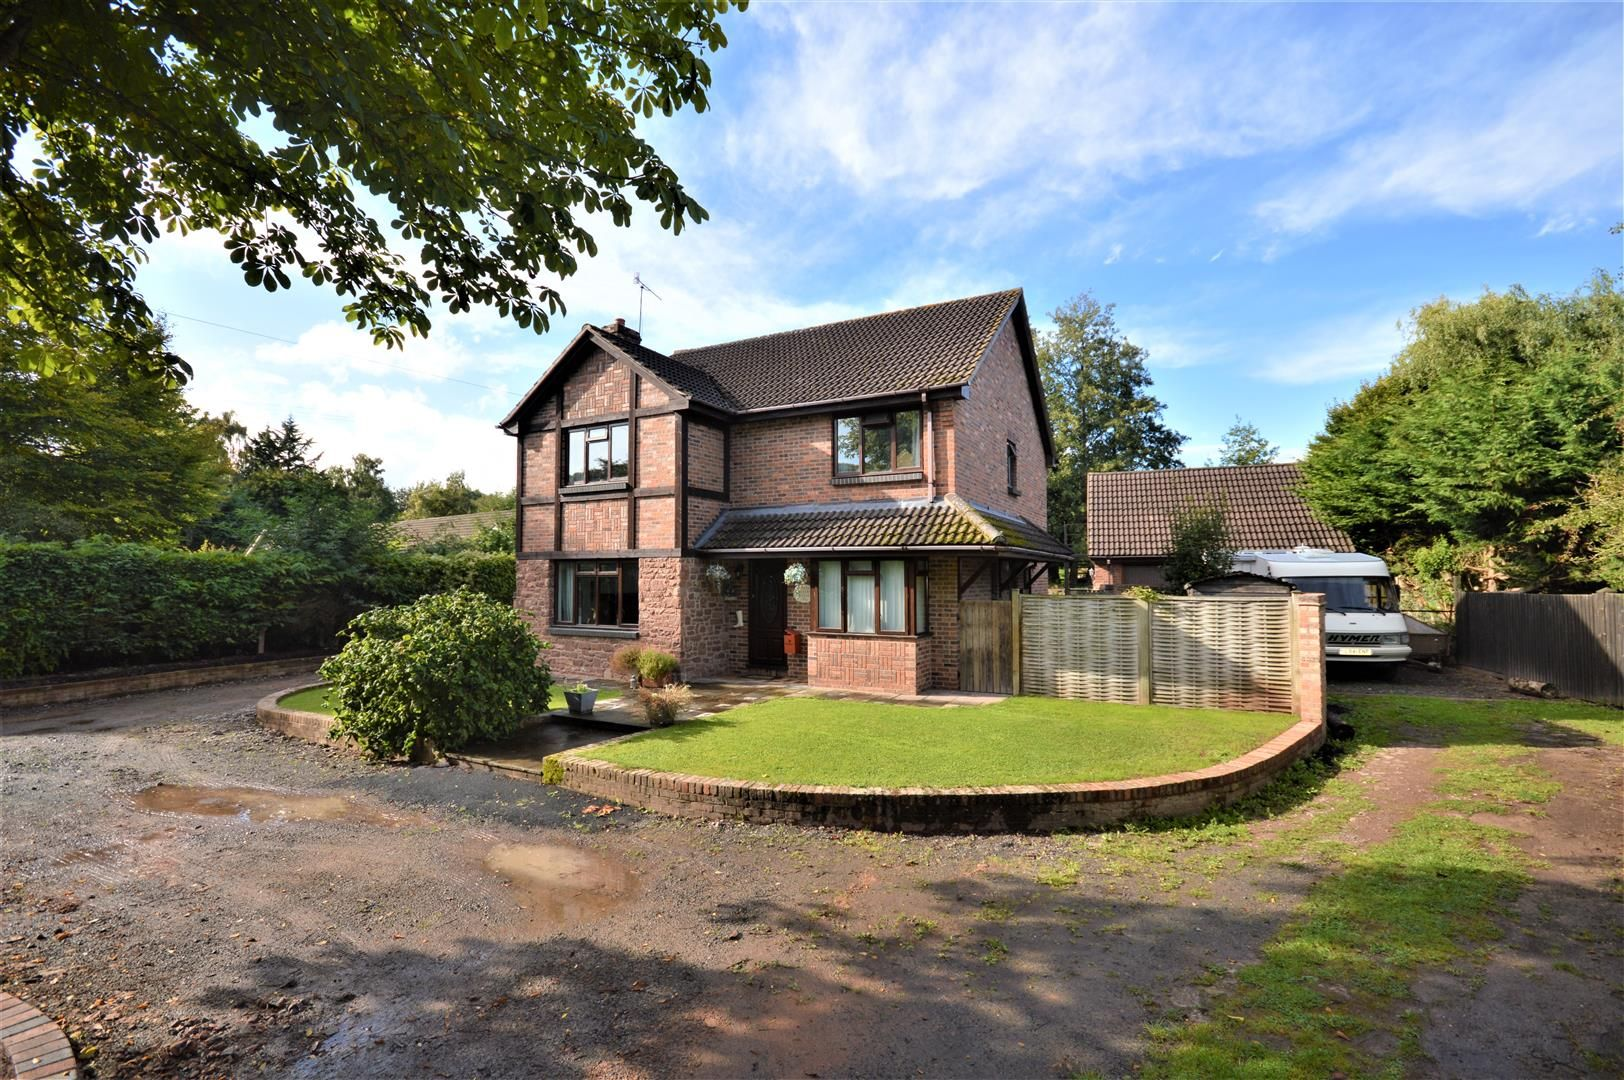 4 bed detached for sale in Hope-Under-Dinmore, HR6